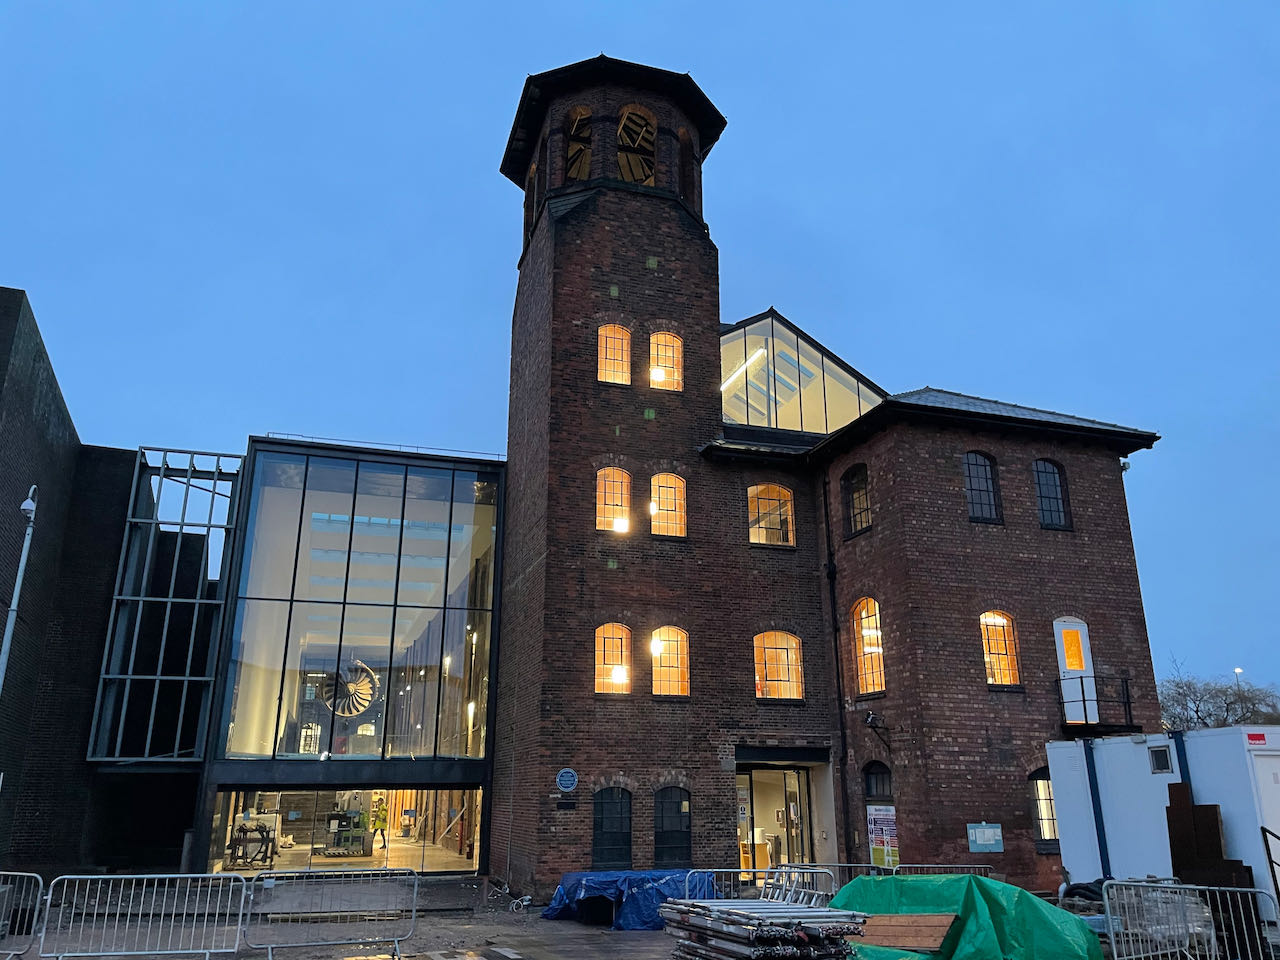 The frontage of the Silk Mill at twilight with the interior lights illuminating the building